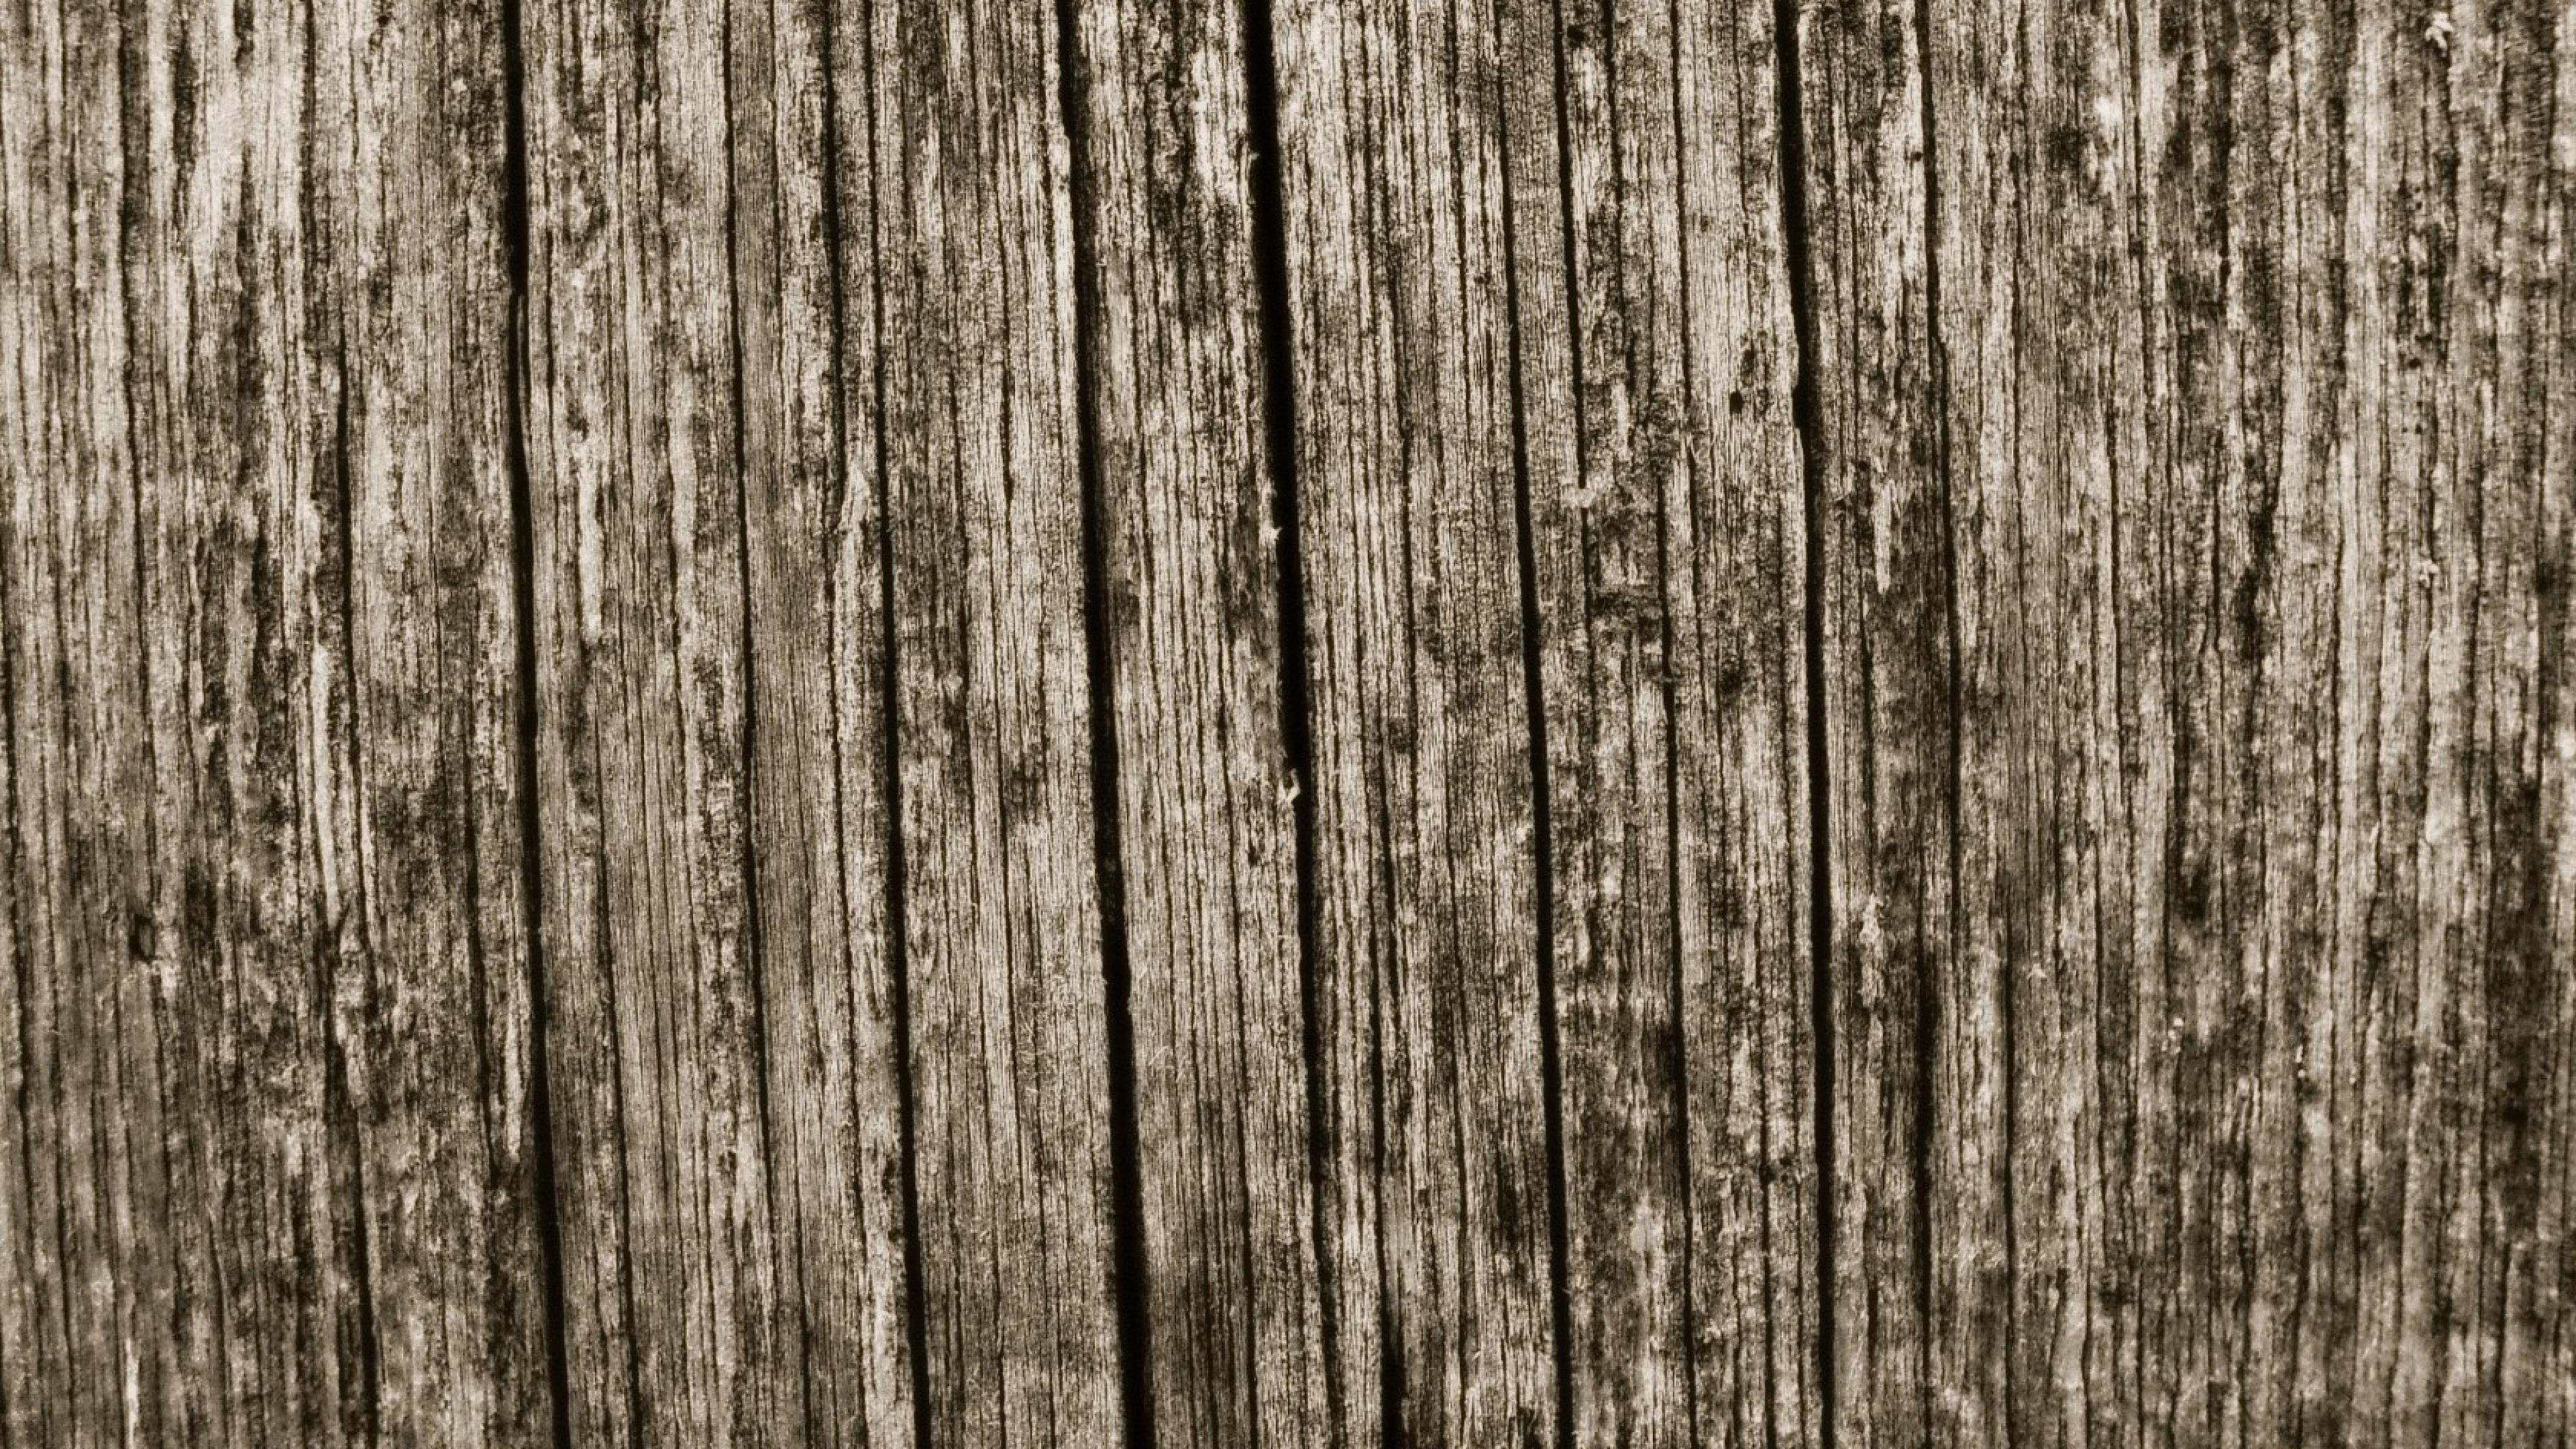 3840x2160 Wood Wallpapers Group (86+)